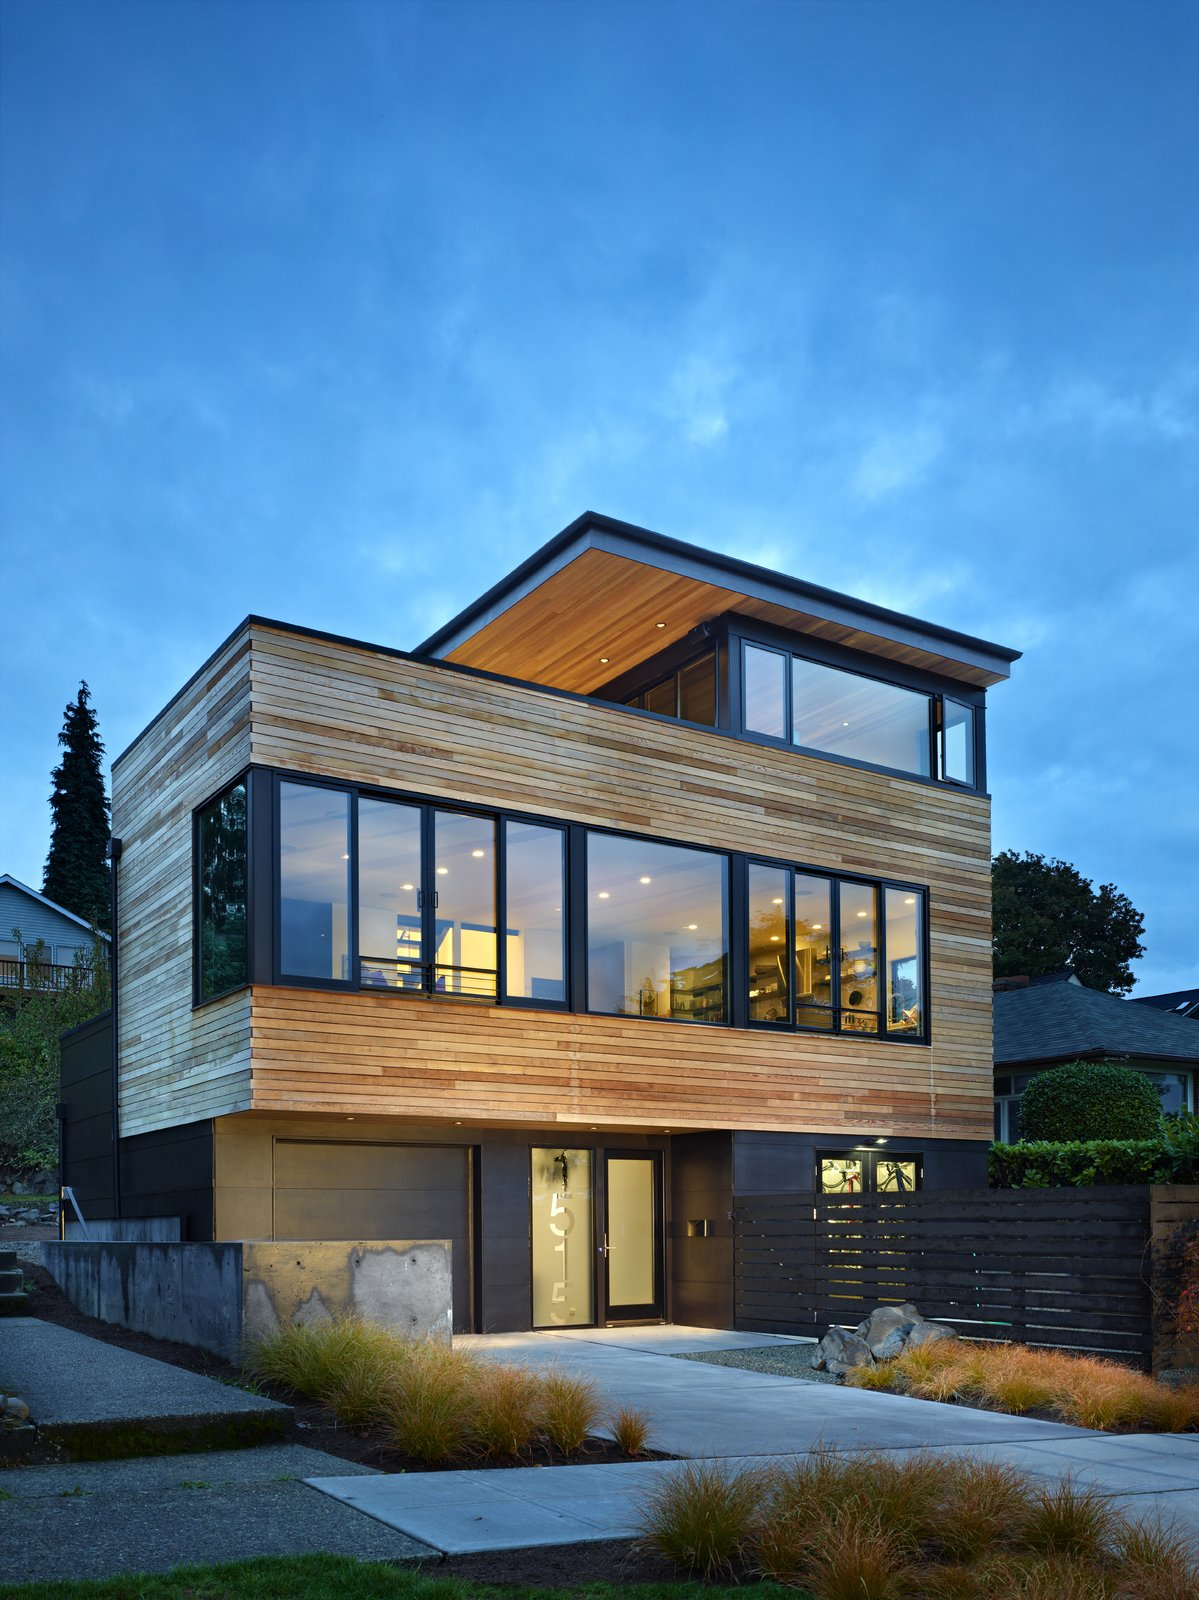 Cycle House Modern Home Seattle Washington Chadbourne Doss Dwell